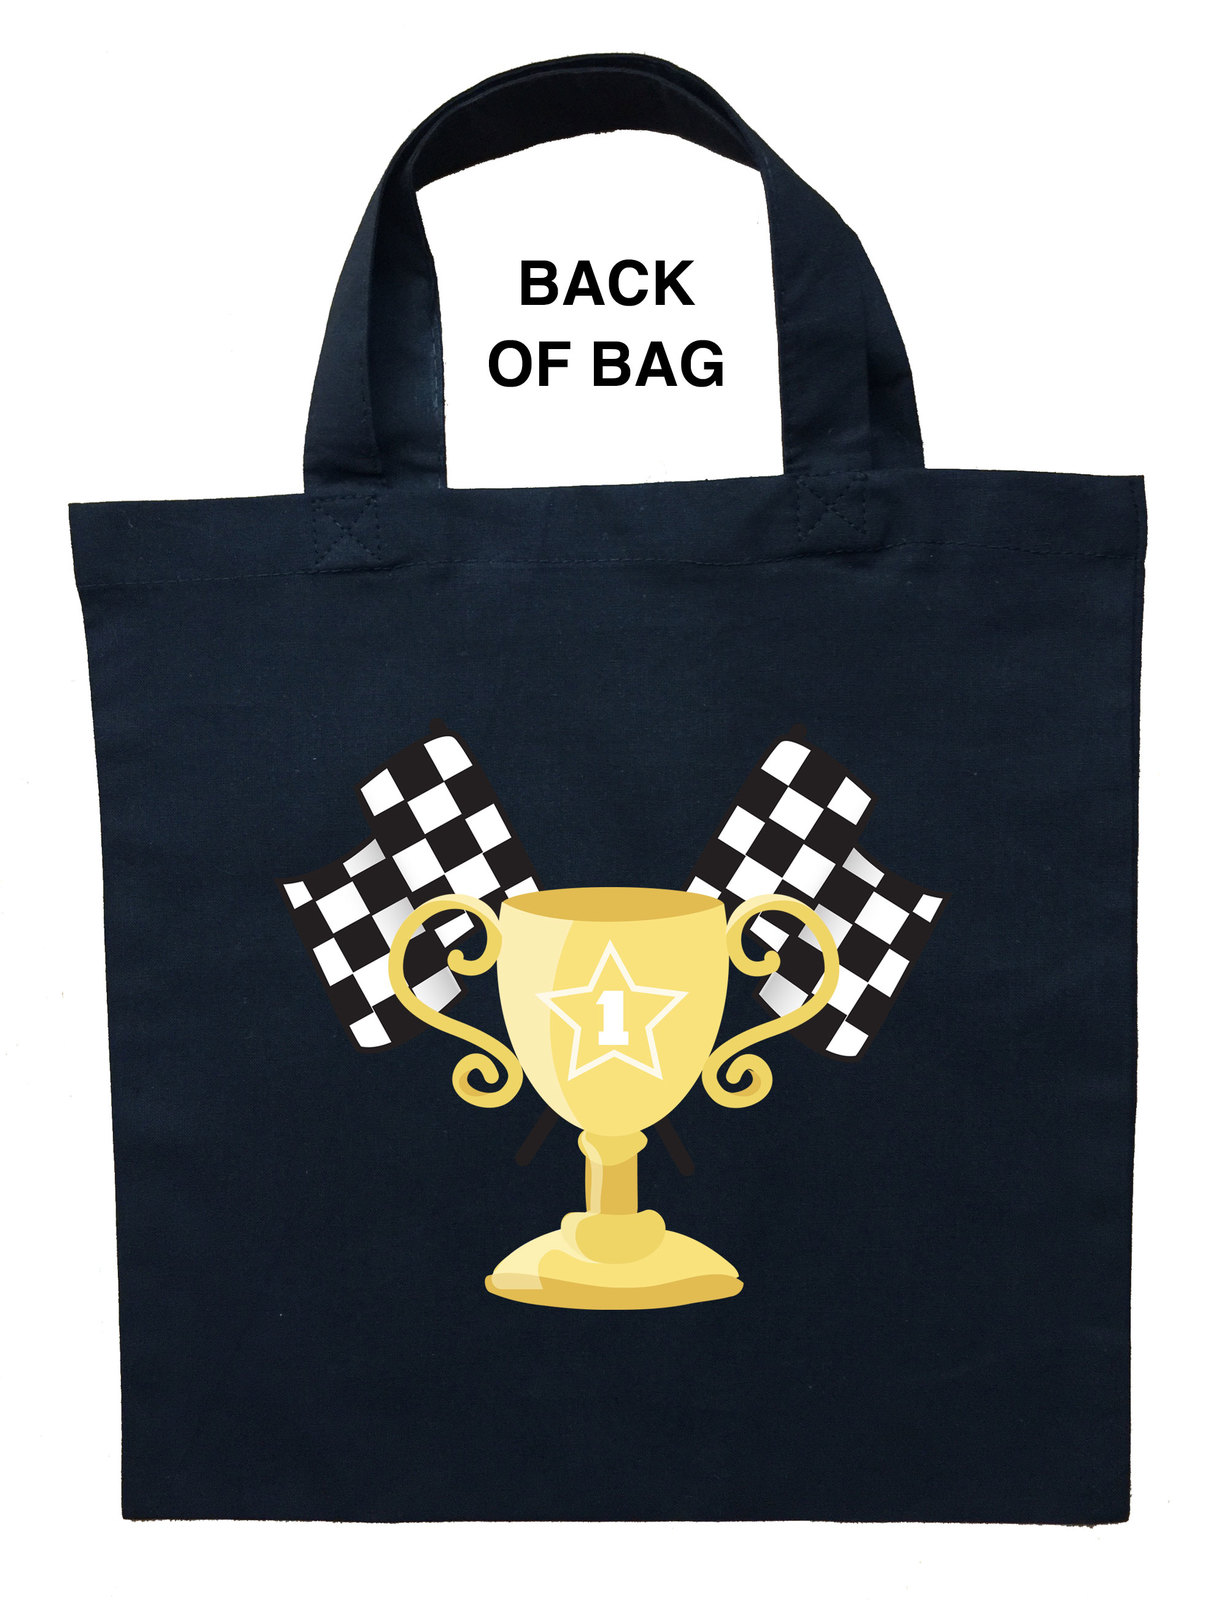 Race Car Driver Trick or Treat Bag, Personalized Race Car Driver Halloween Bag